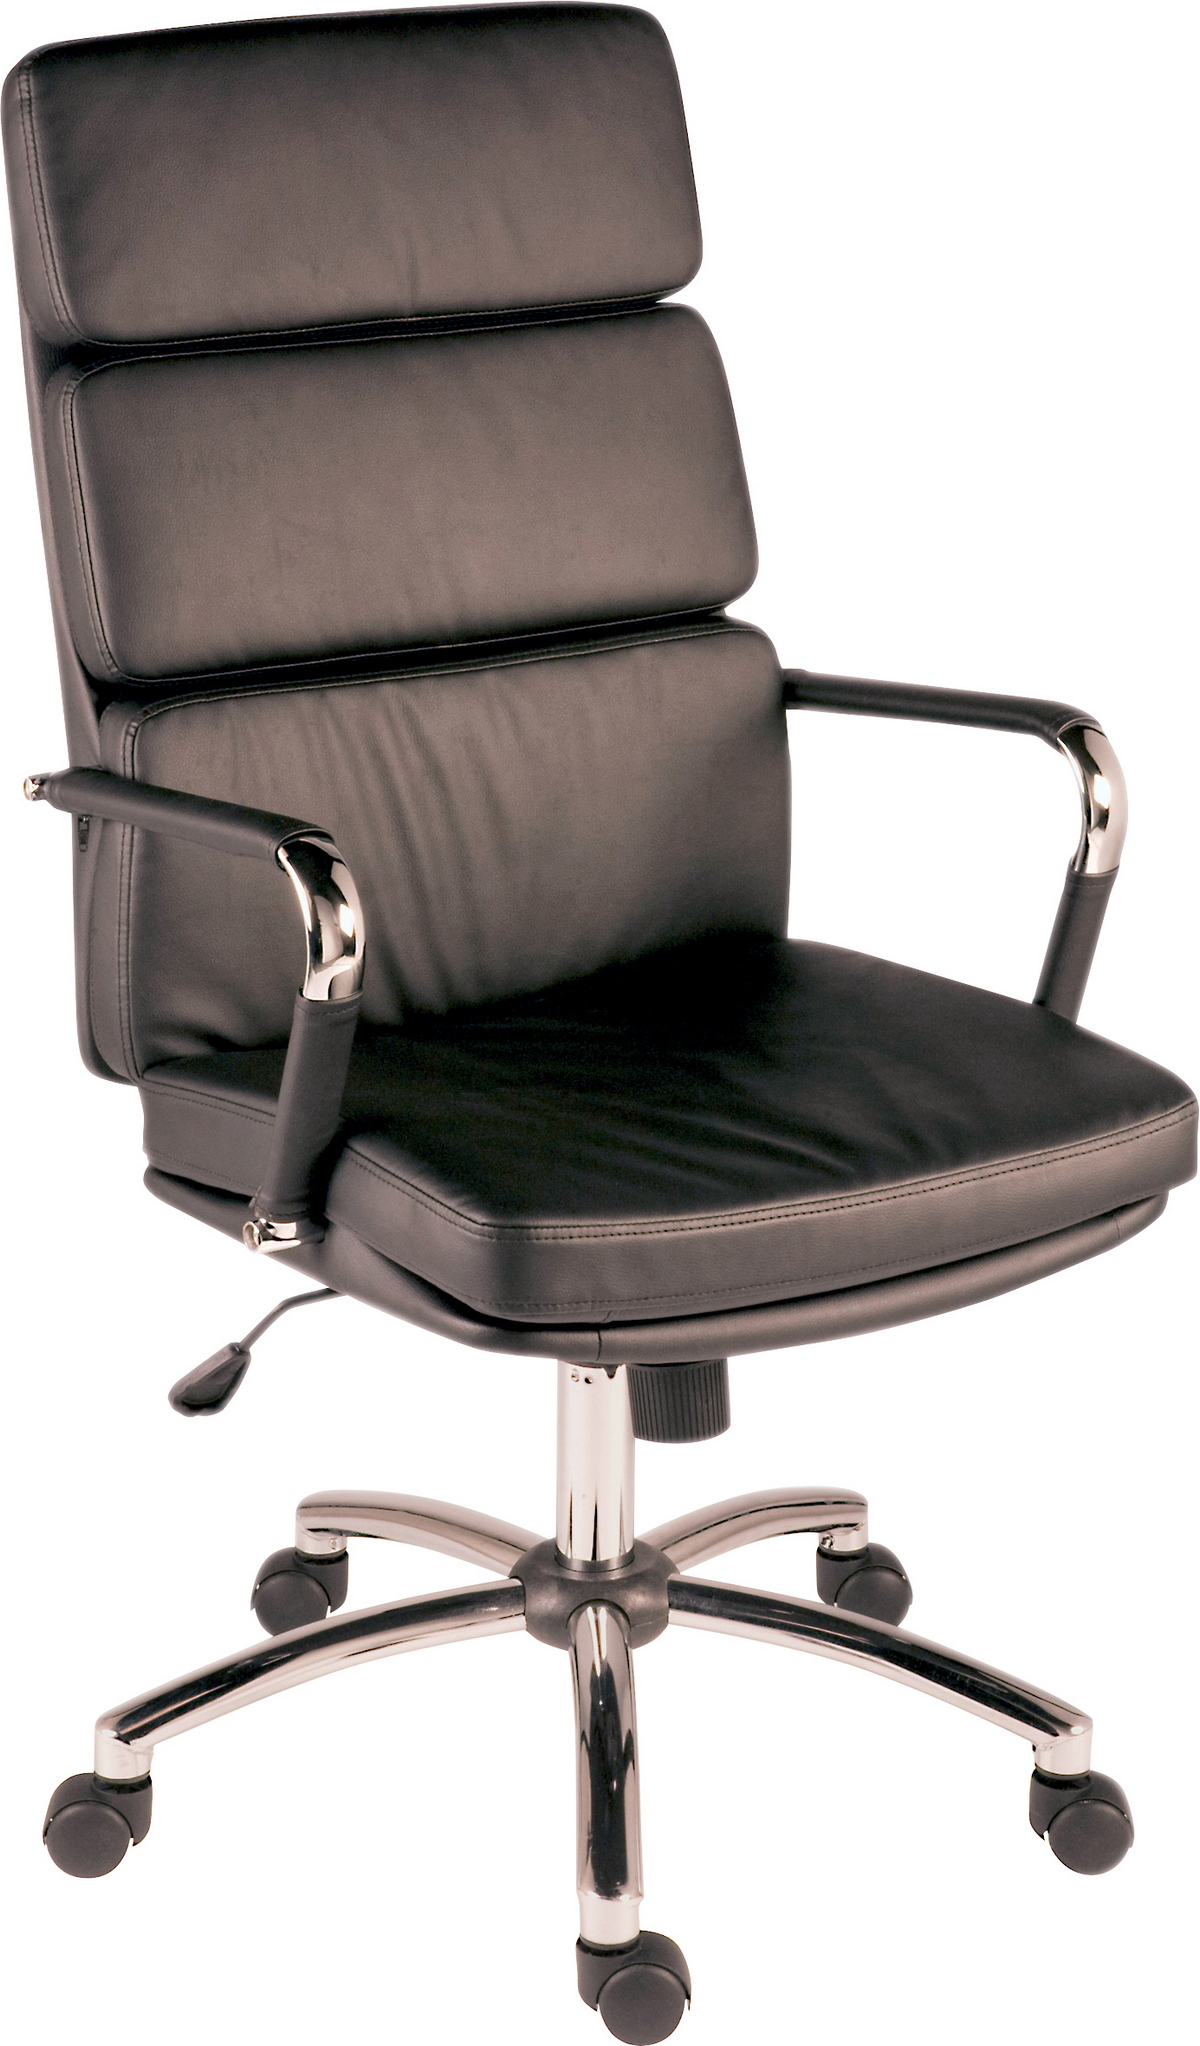 Budget Eames Style Padded Faux Leather Office Executive